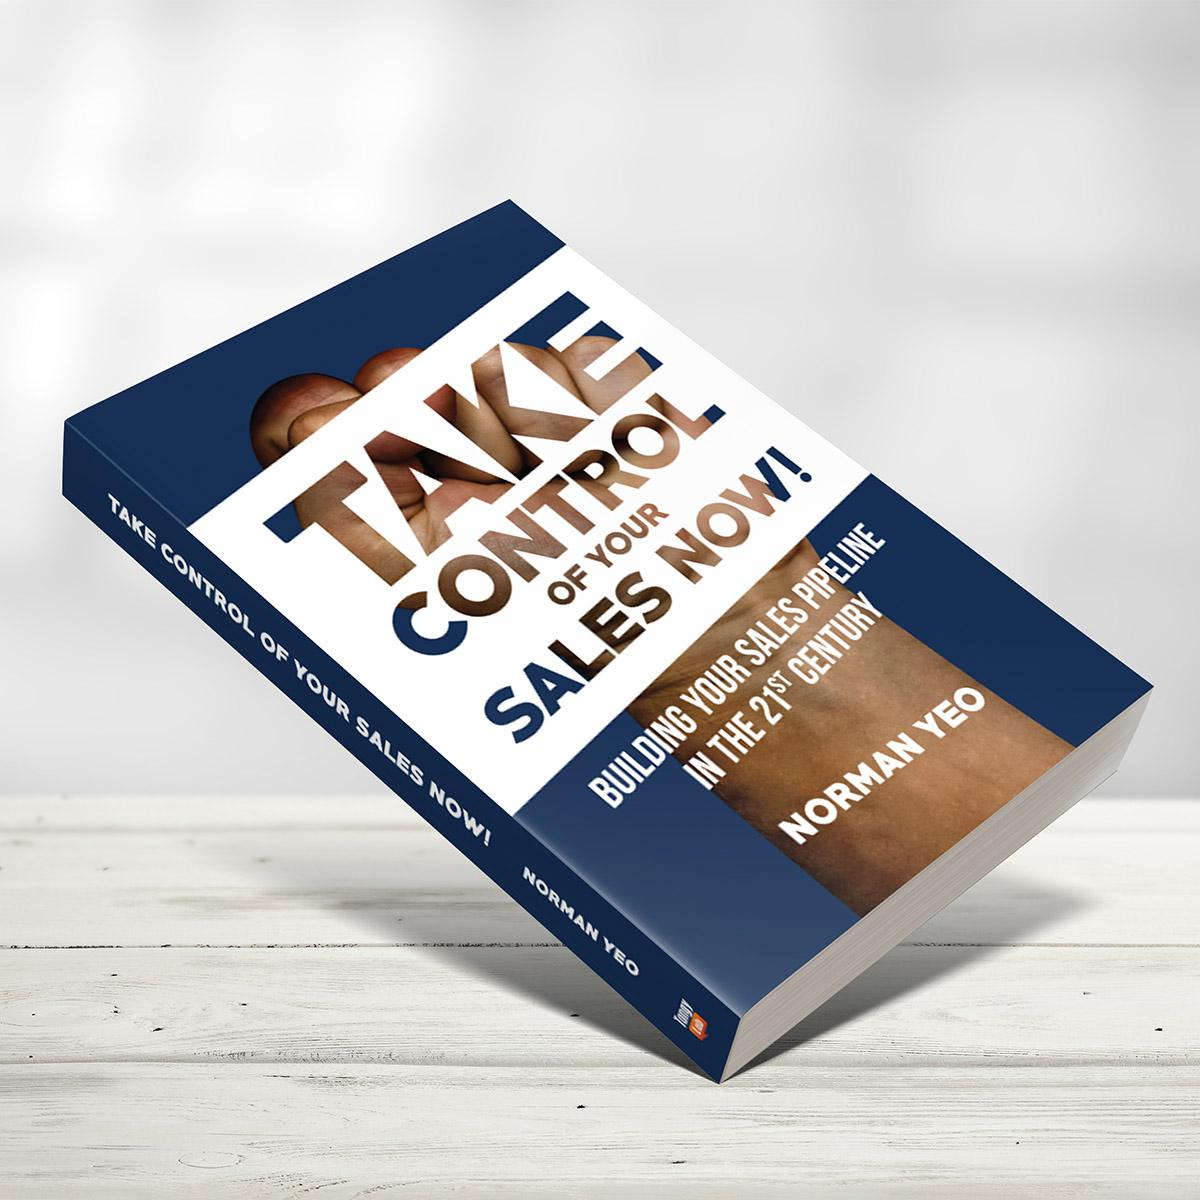 Take Control Of Your Sales Now! Marketing & Lead Generation Strategies For Building Your Sales Pipeline in the 21st Century (Author: Norman Yeo) 205 Pages Physical Copy For Business Owner, Management, Marketers